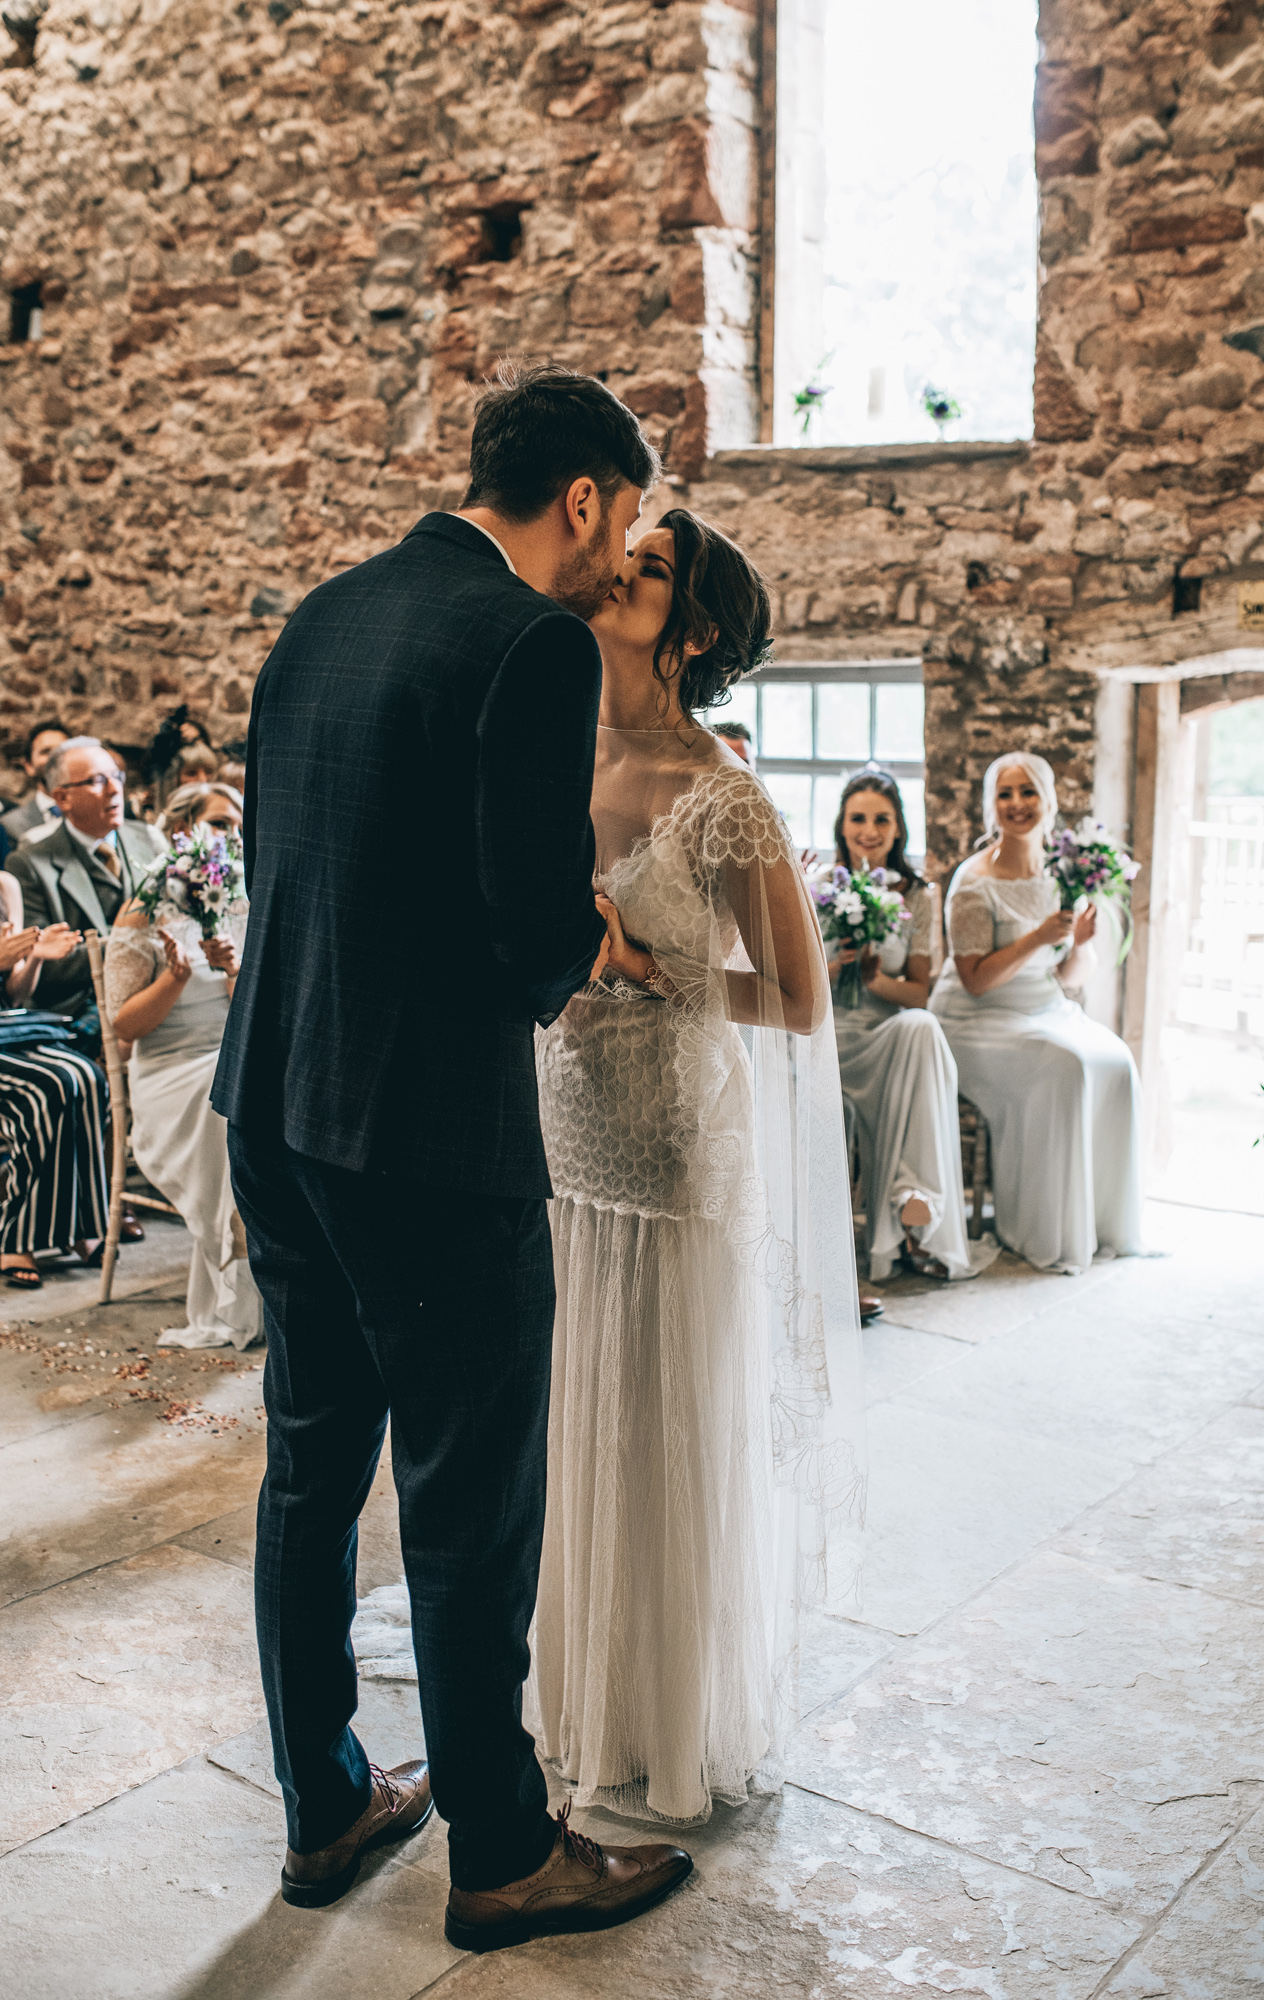 Kate-Beaumont-Sheffield-Lucy-Bohemian-Lace-Dress-Barn-Wedding-Cumbria-13.jpg